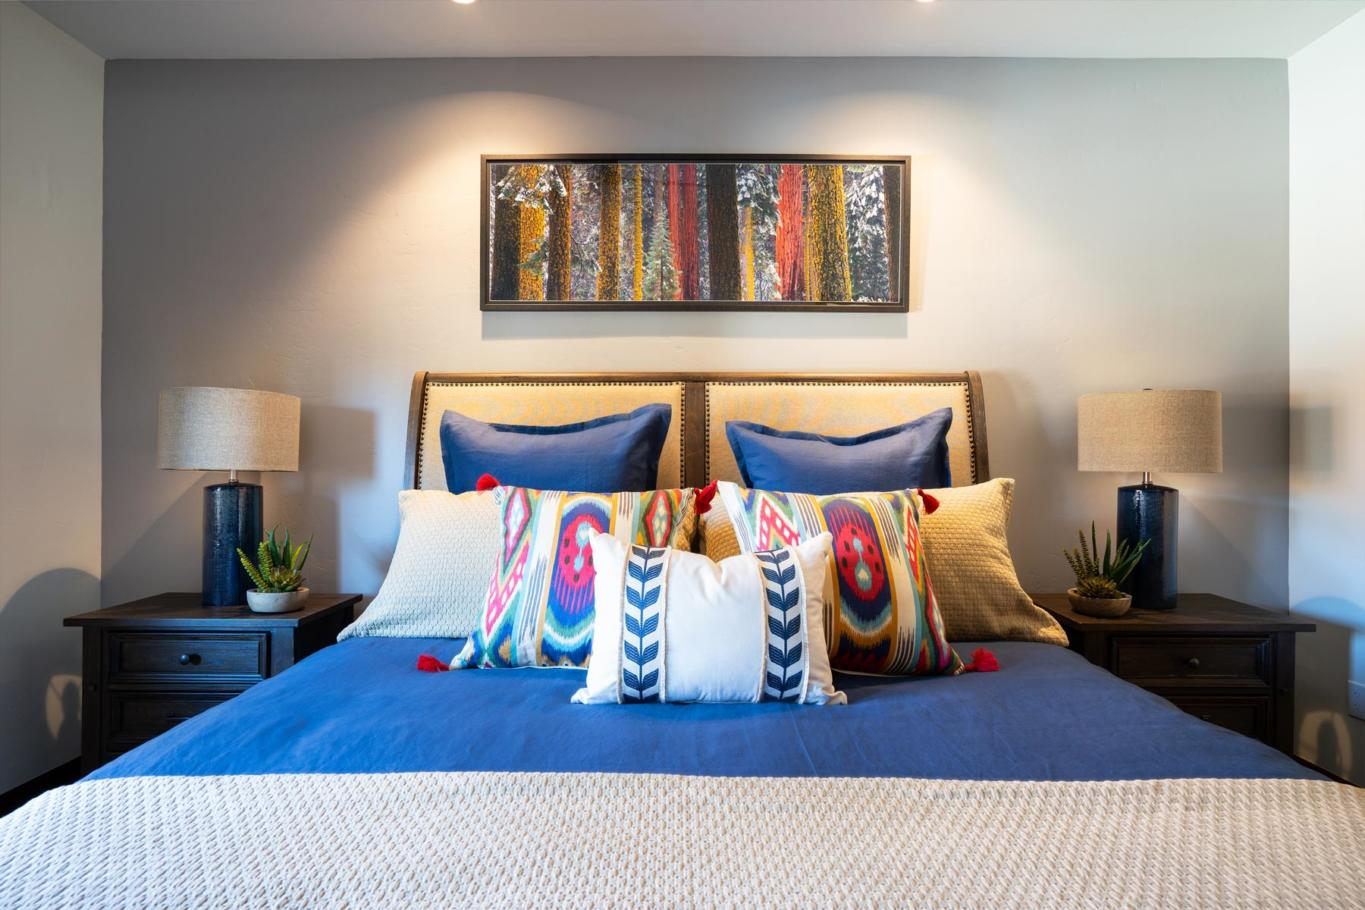 Zalanta Bed Room Design by Talie Jane Interiors